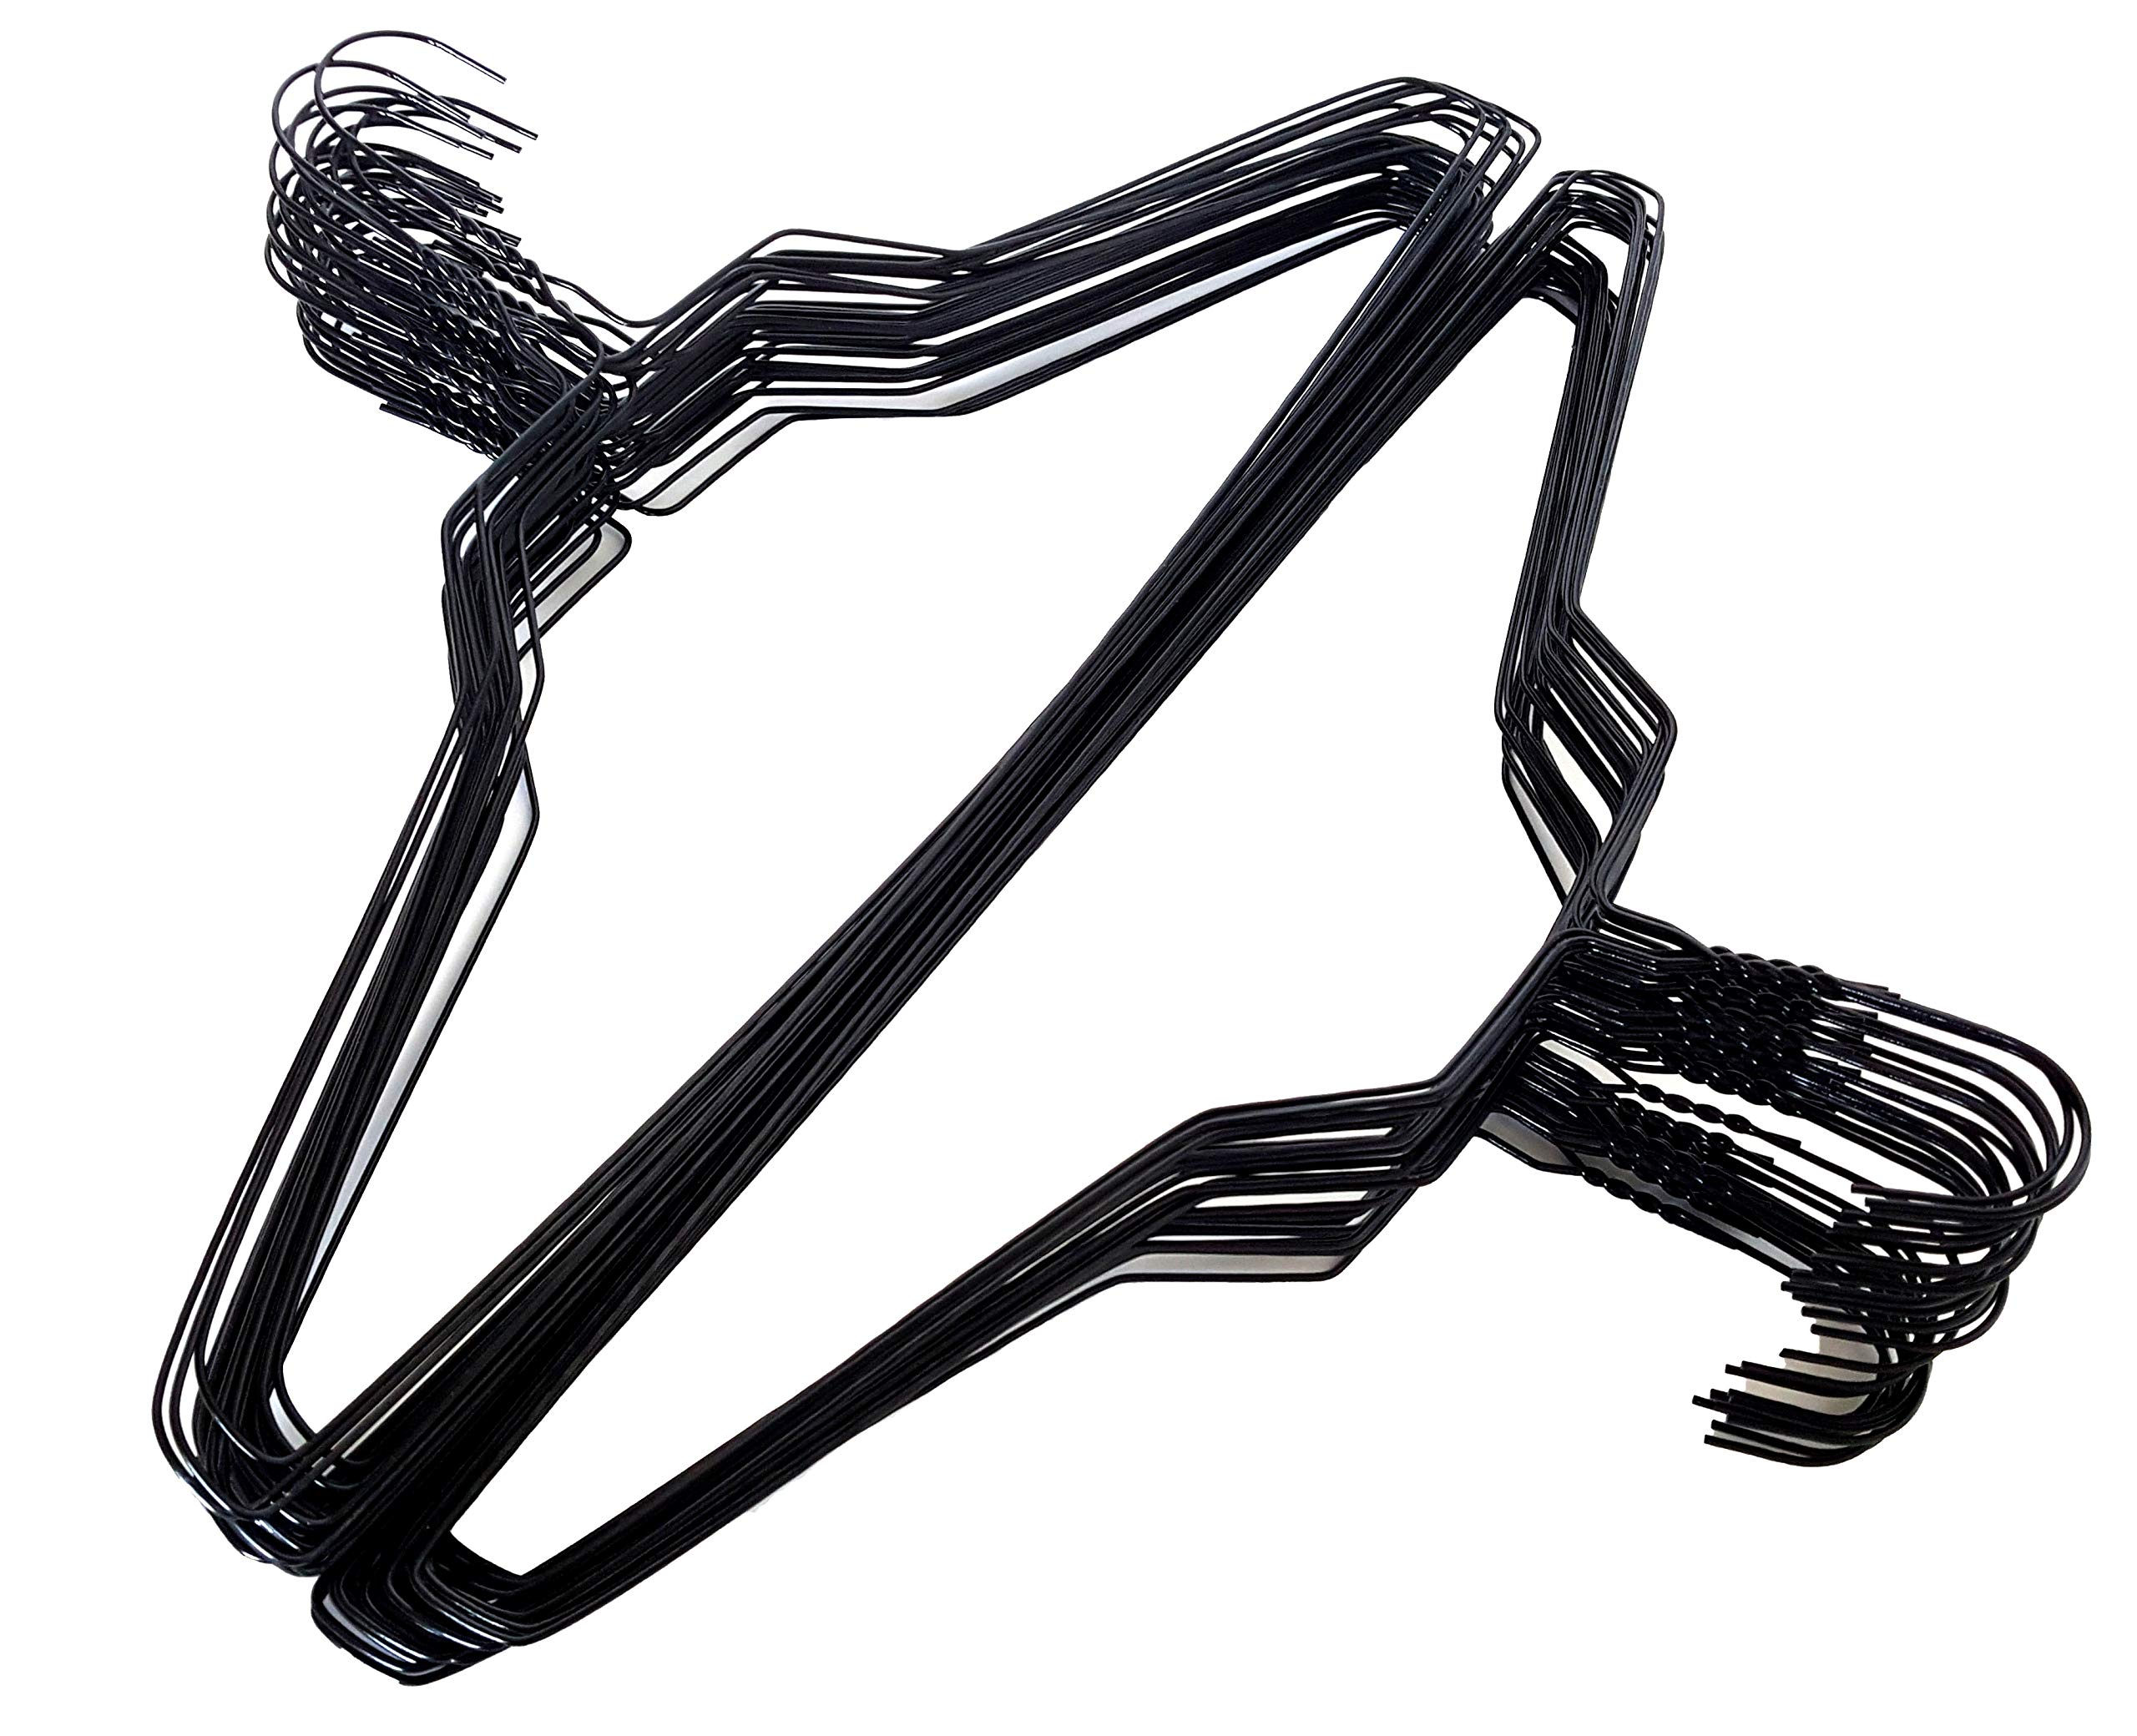 200 Black Wire Hangers 18'' Standard Clothes Hangers (200, Black) by Homeneeds Inc